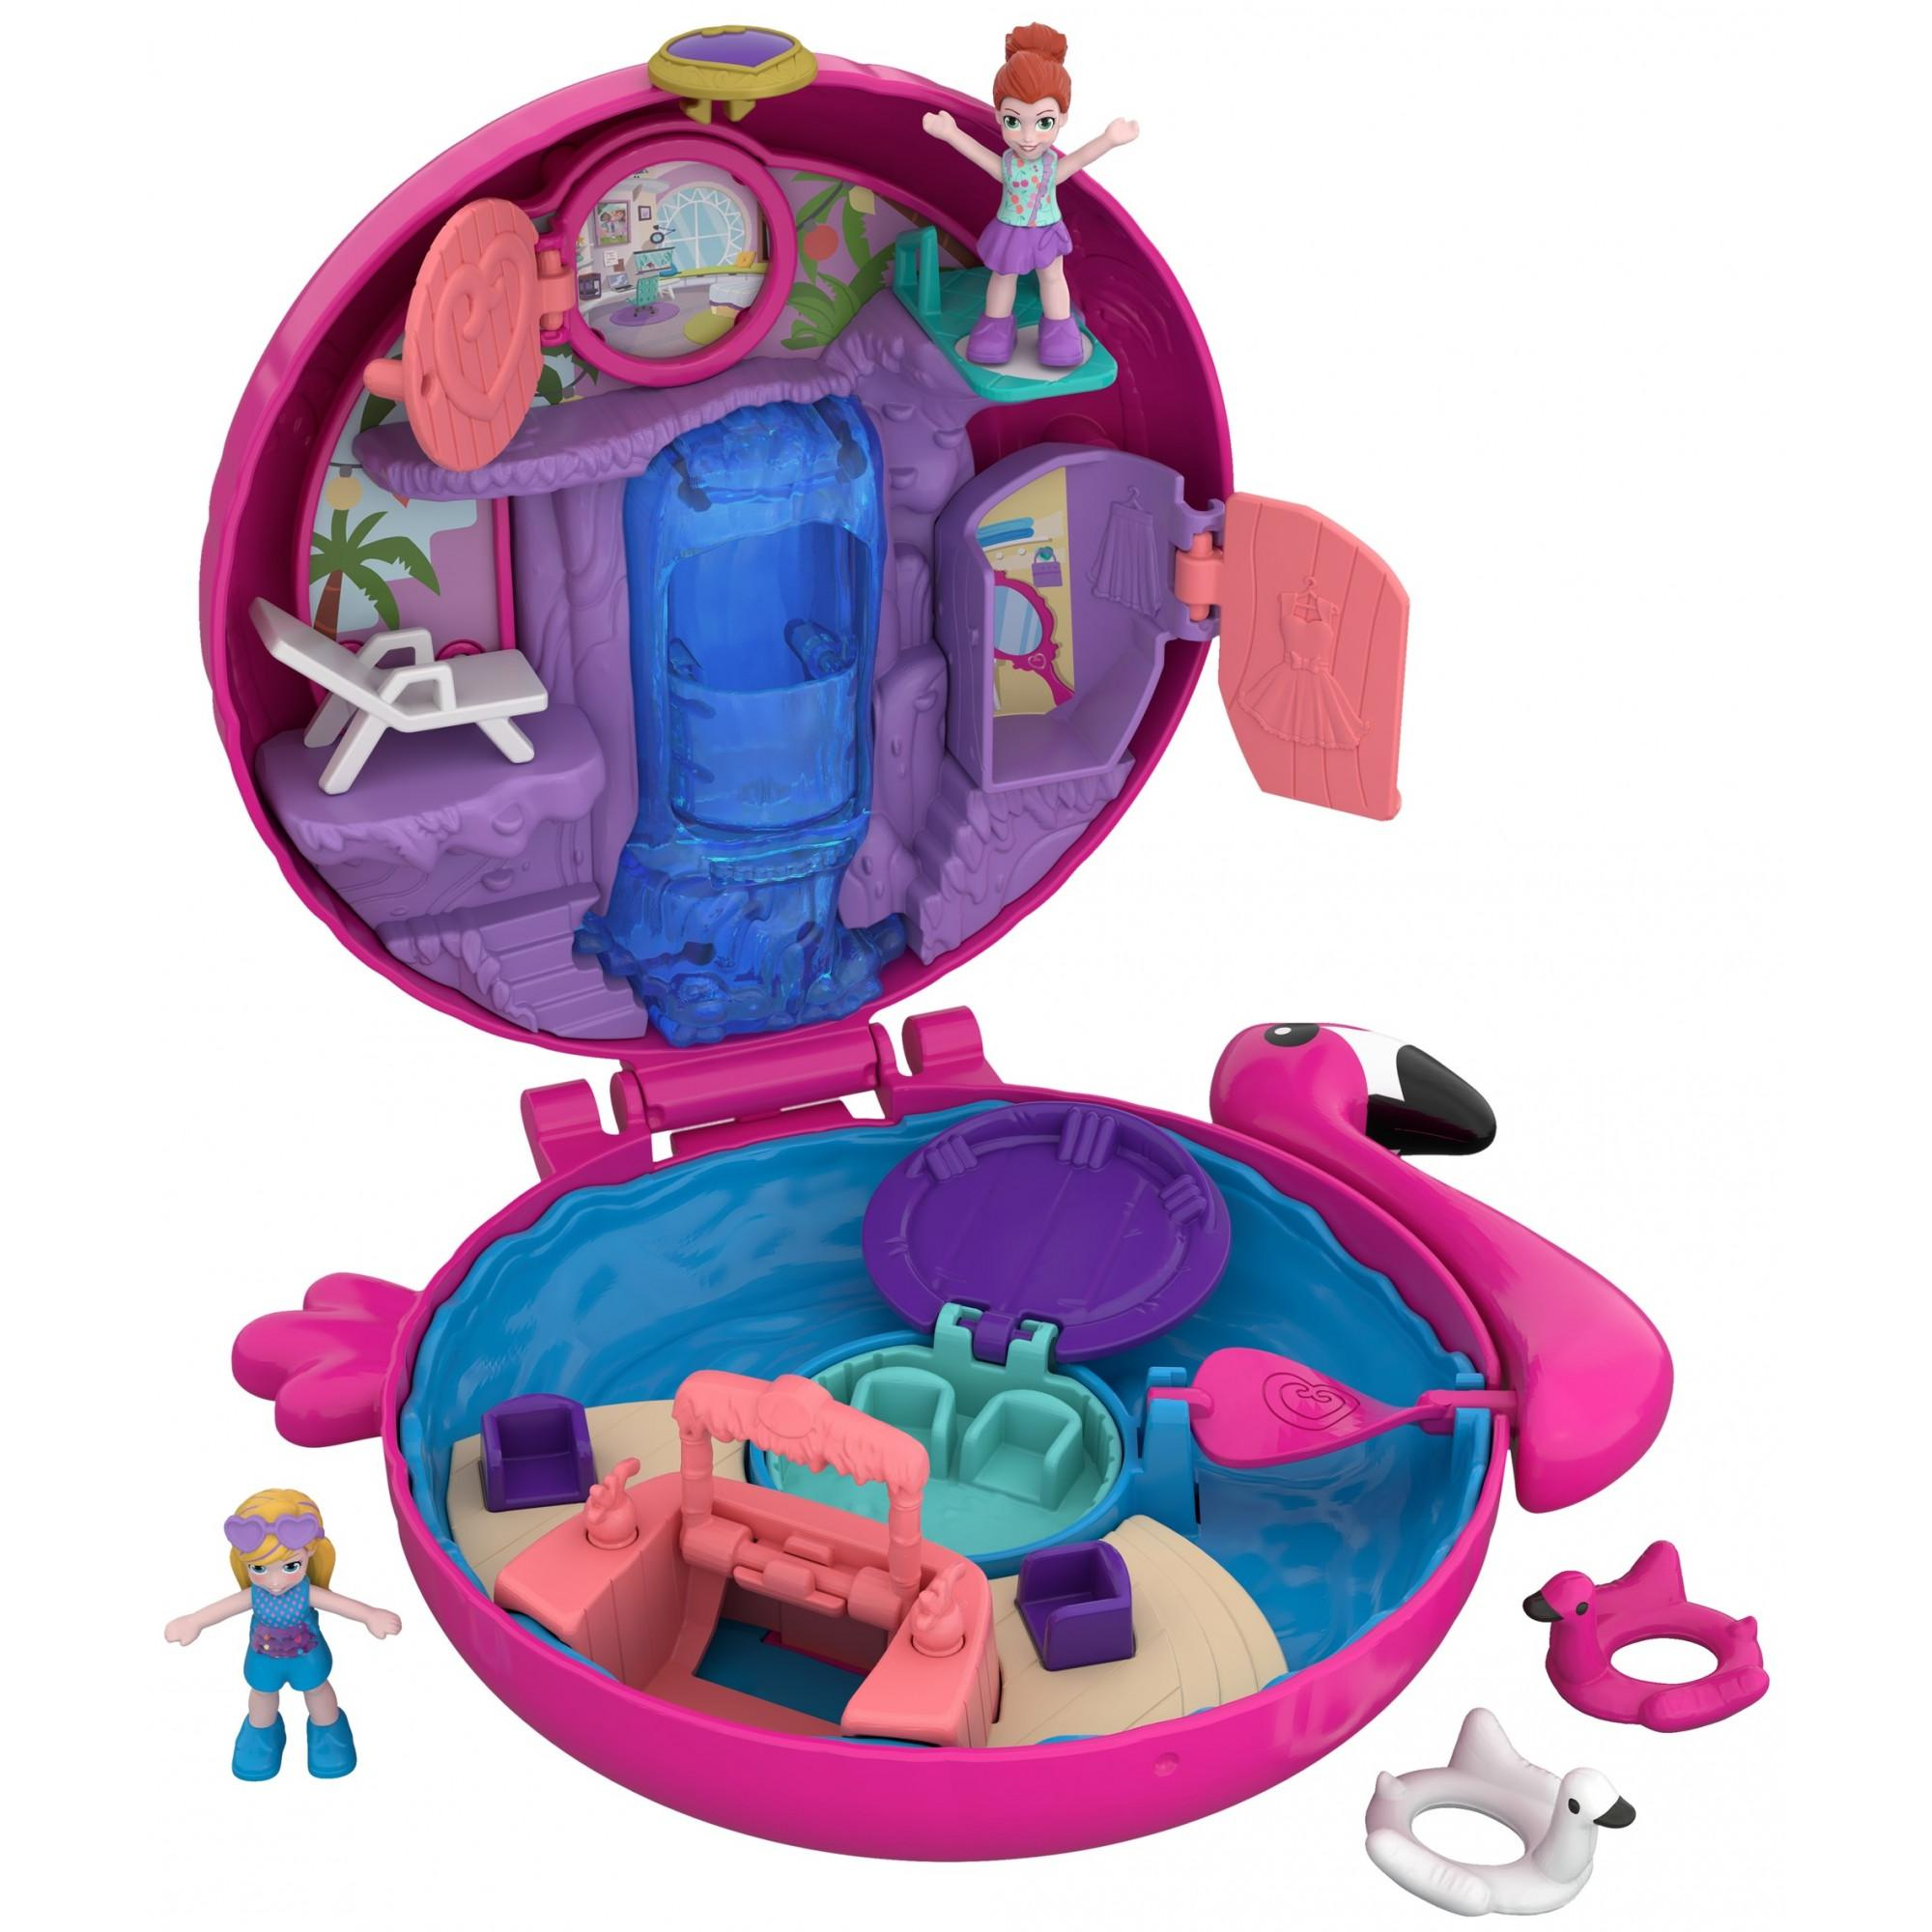 Polly Pocket Pocket World Flamingo Floatie Pool Compact with Adventure Dolls